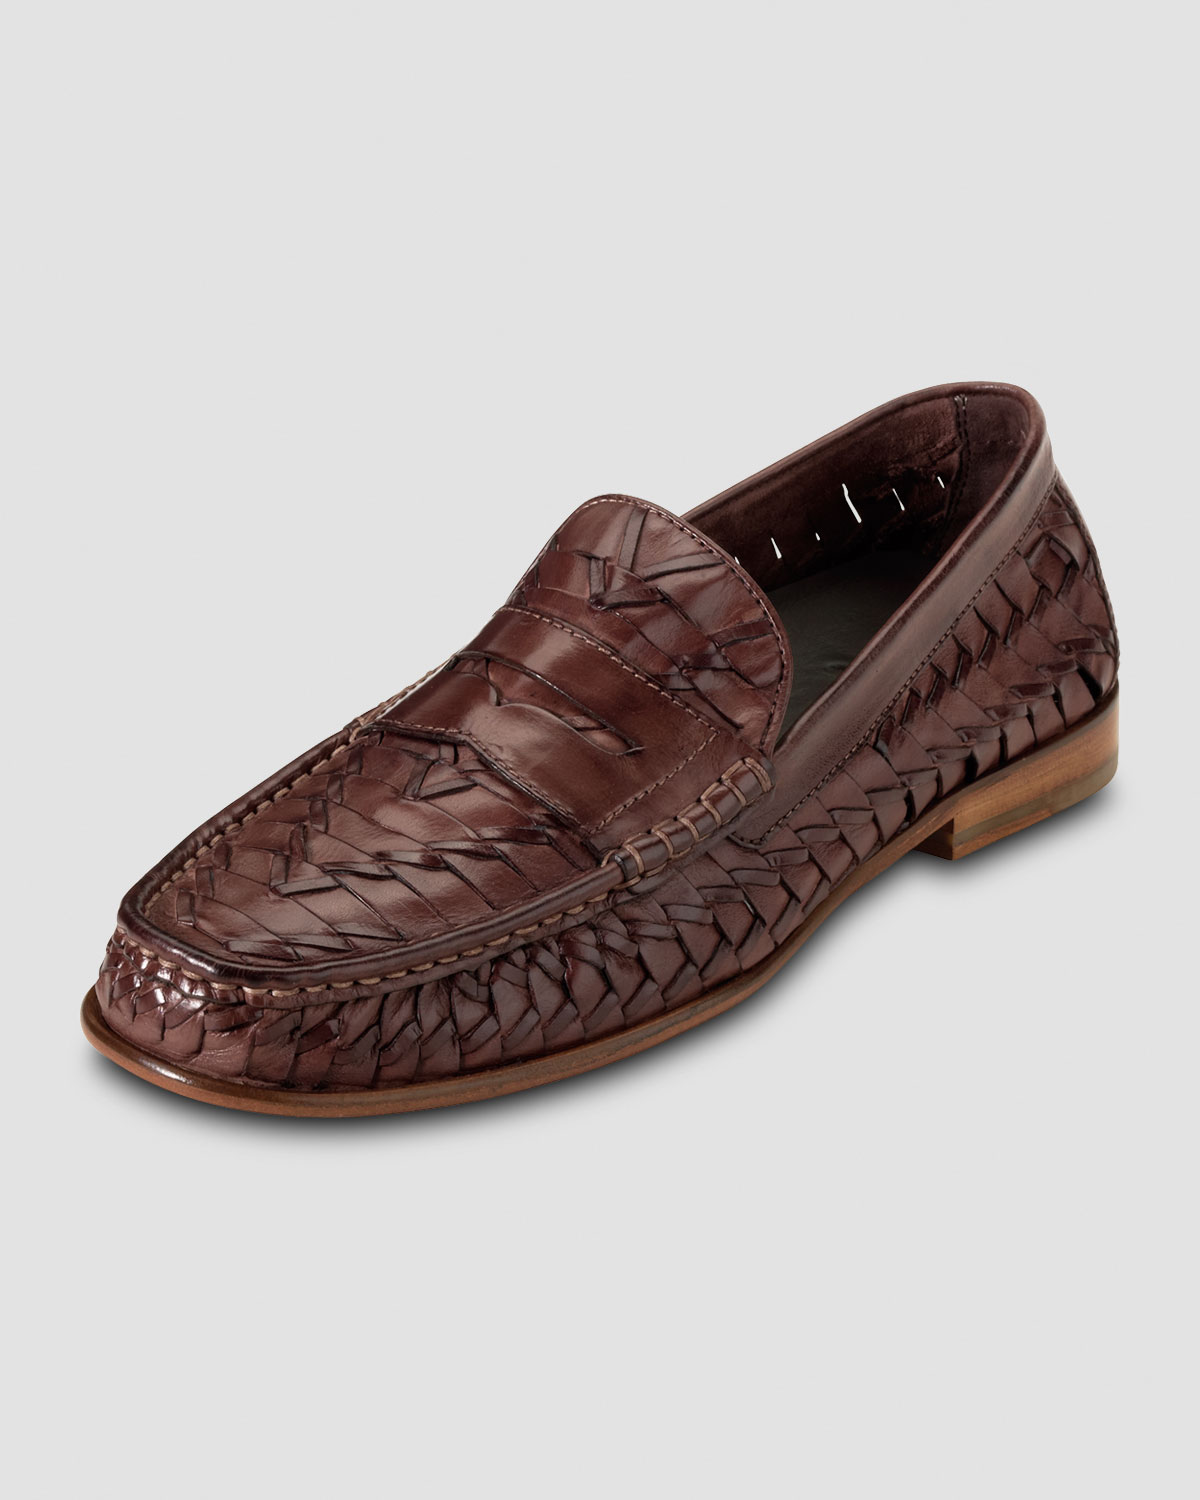 Lyst - Cole Haan Air Tremont Woven Penny Loafer in Brown for Men 4018c74ea